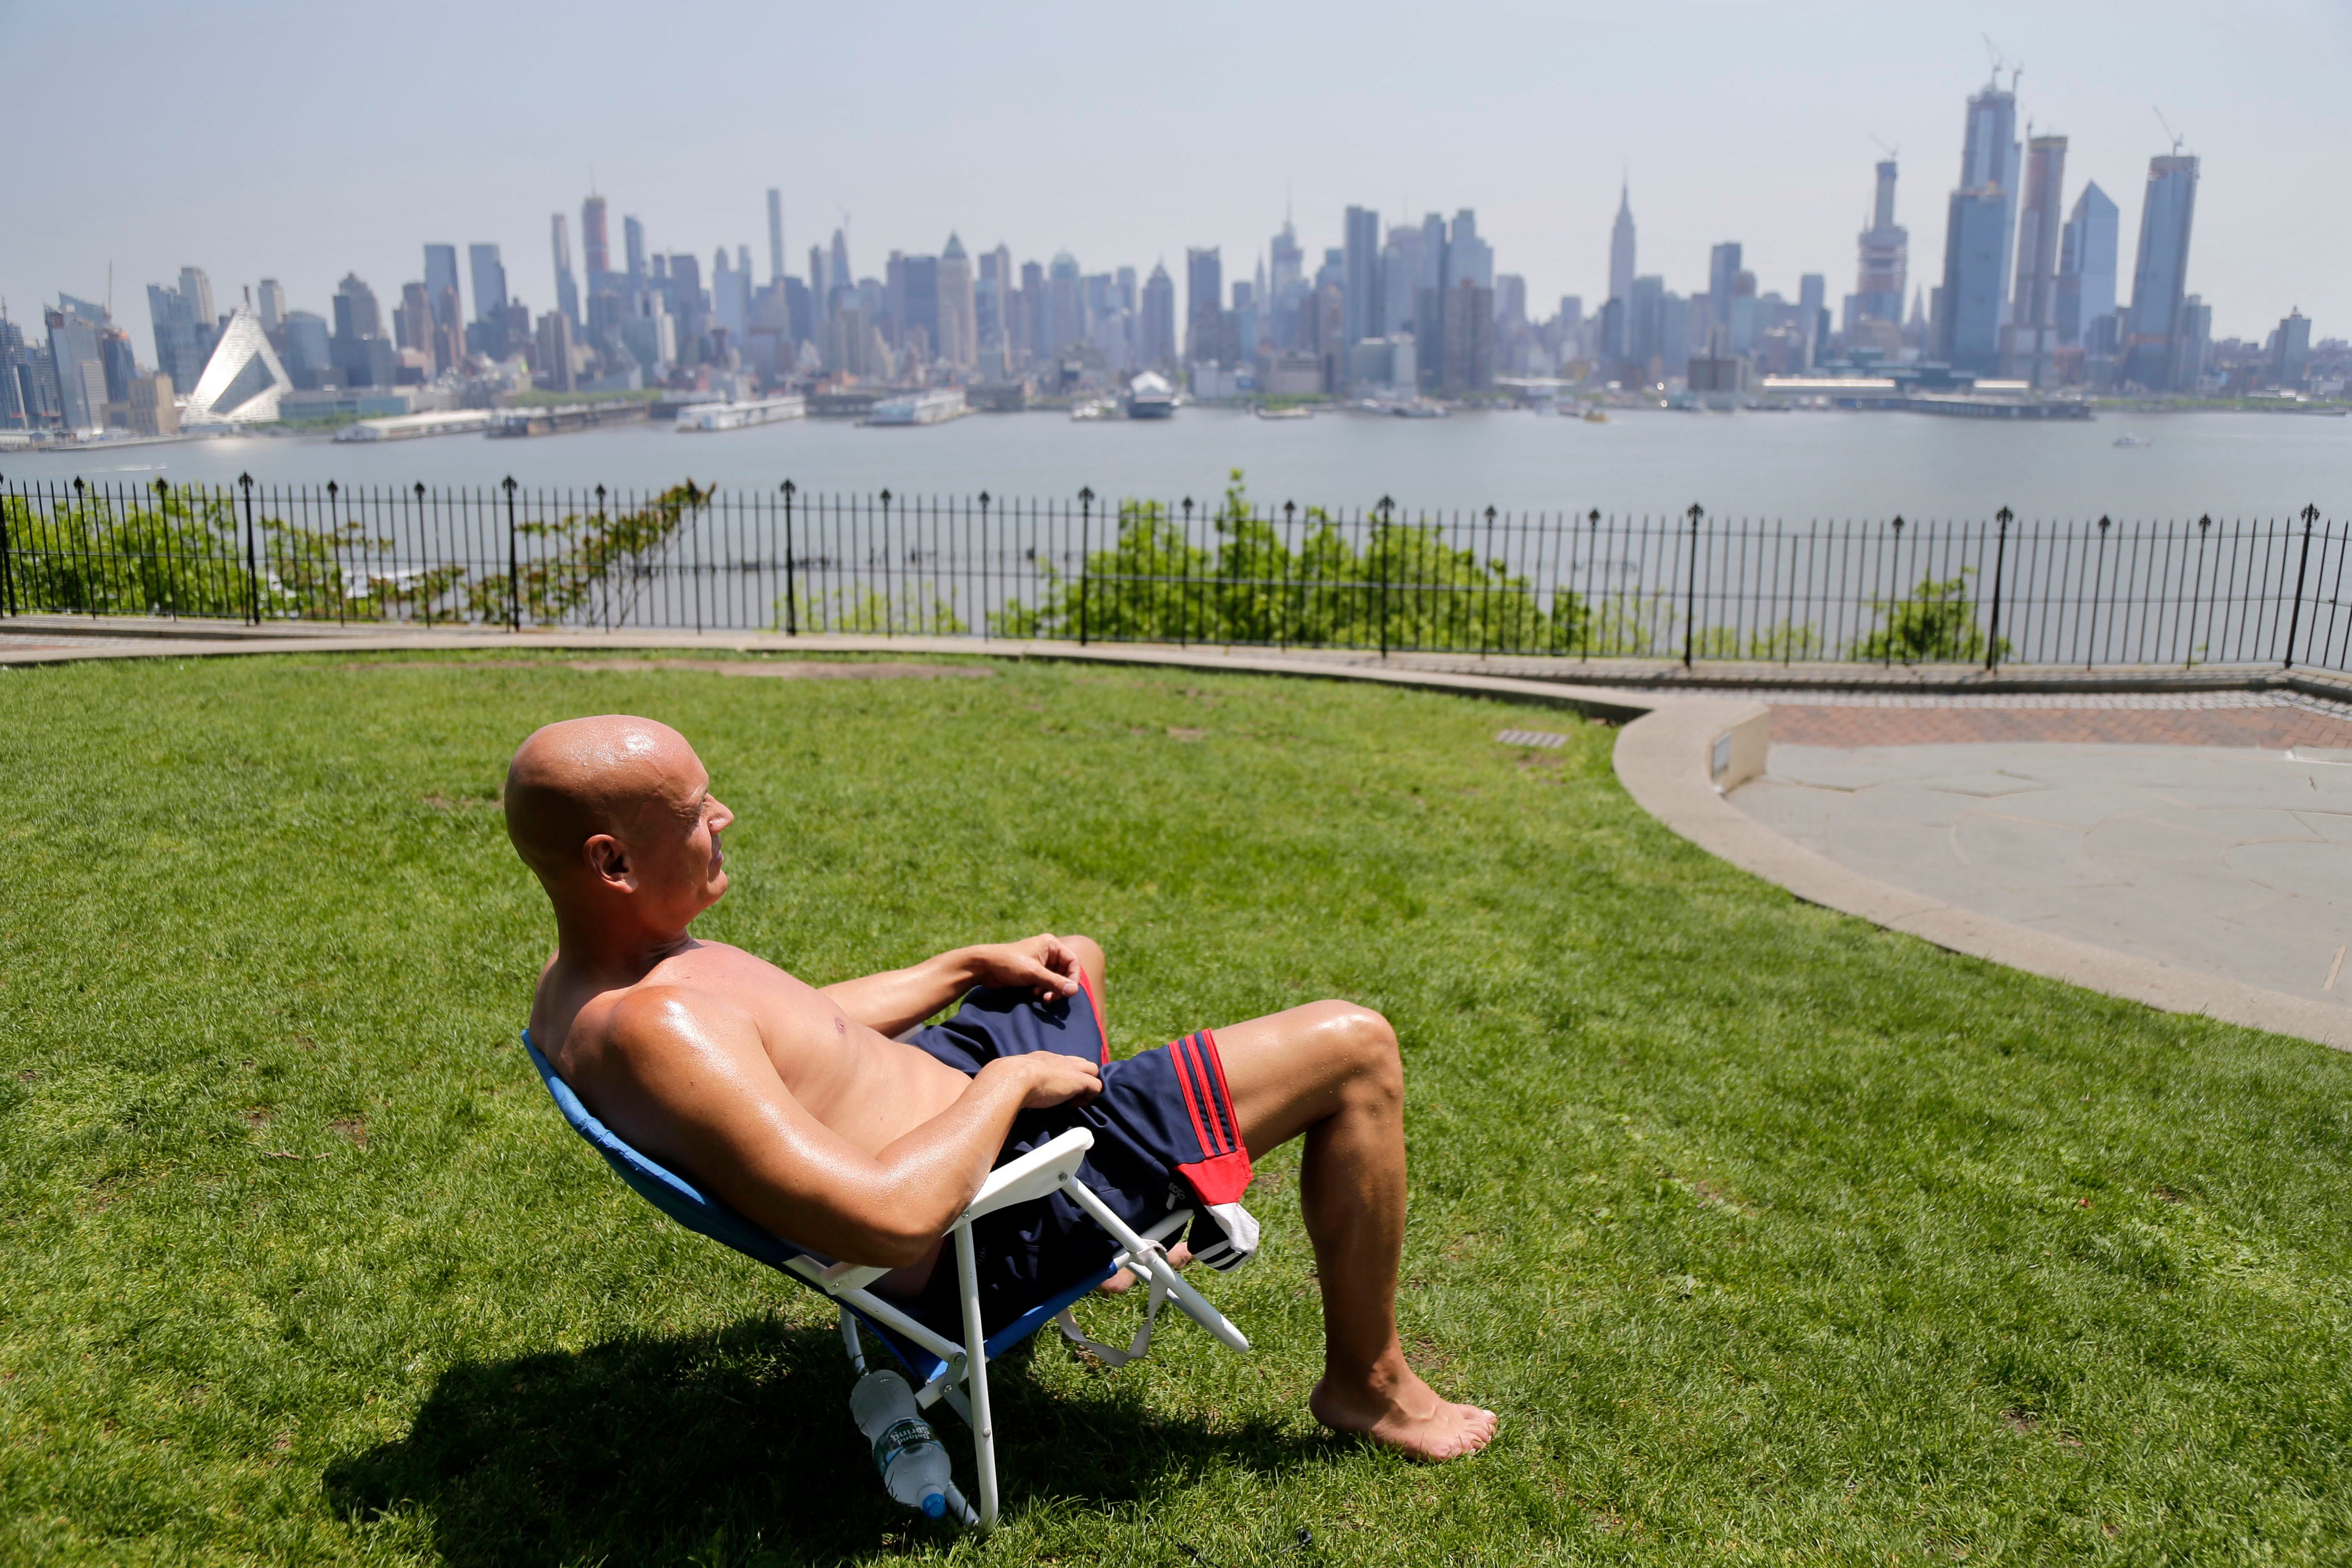 May was warmest on record for USA, breaking mark set during Dust Bowl